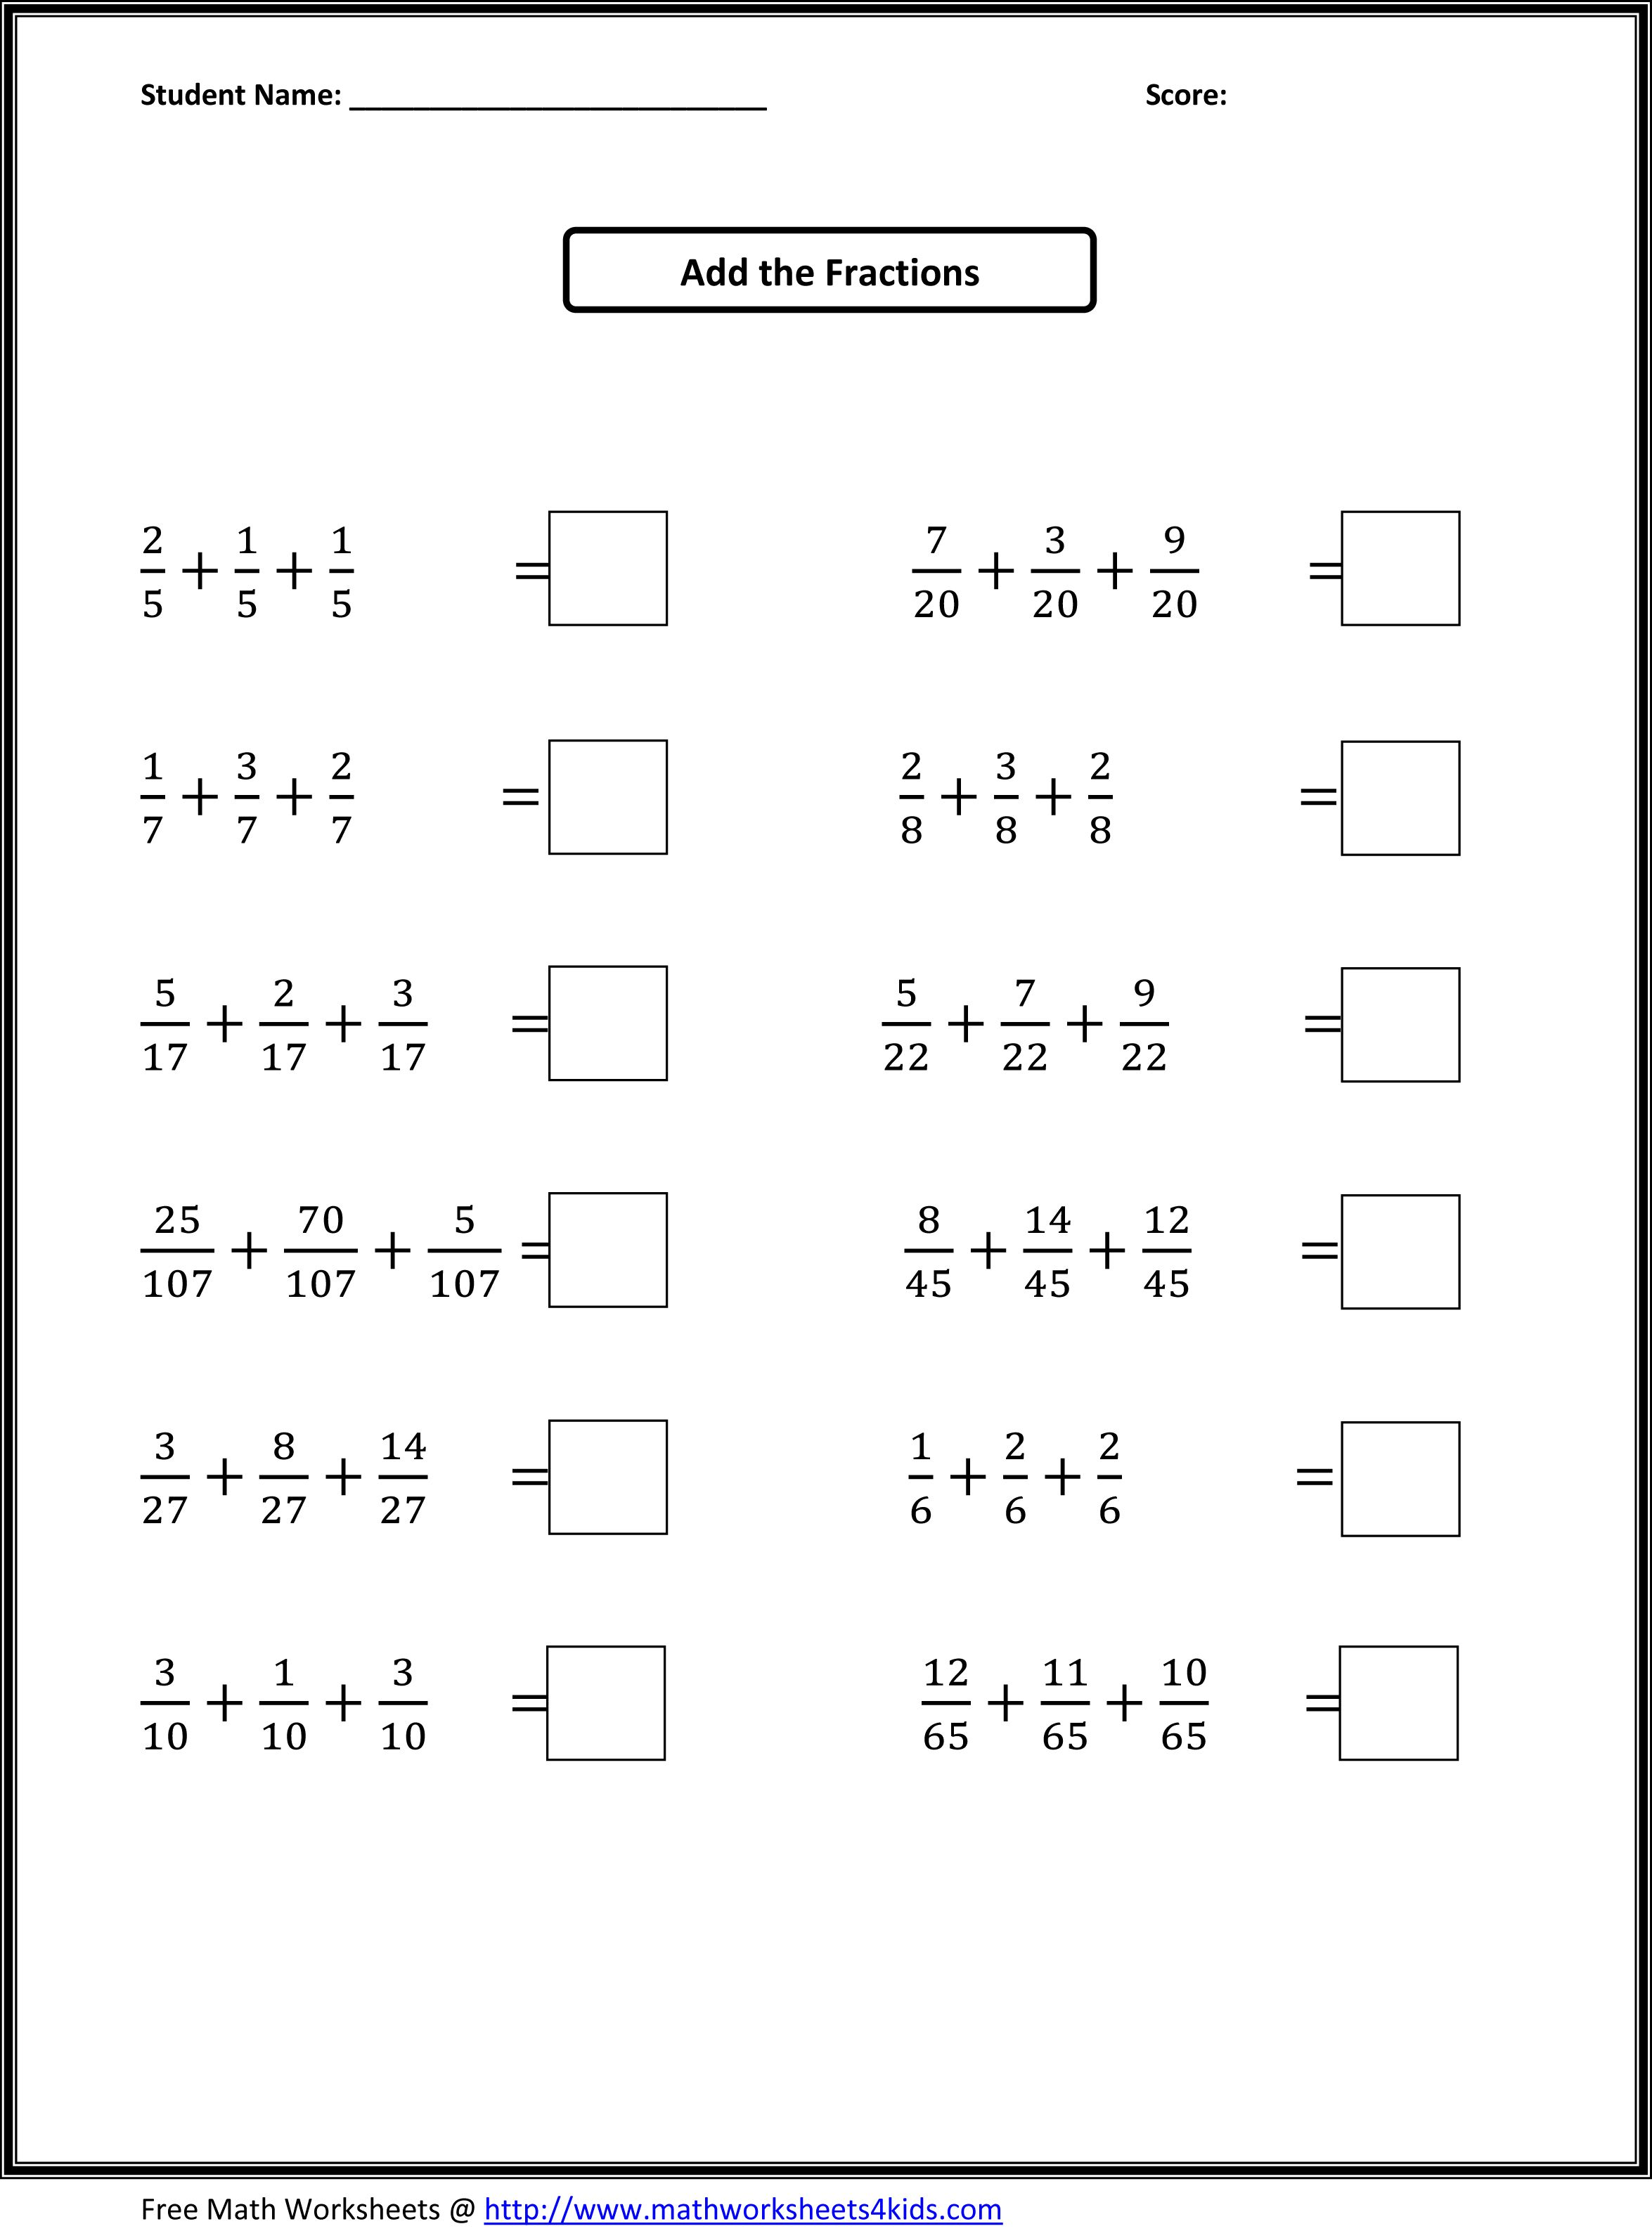 Worksheet Printable Math Worksheets For 4th Graders fraction math worksheets for 4th grade delwfg com 1000 images about on pinterest math